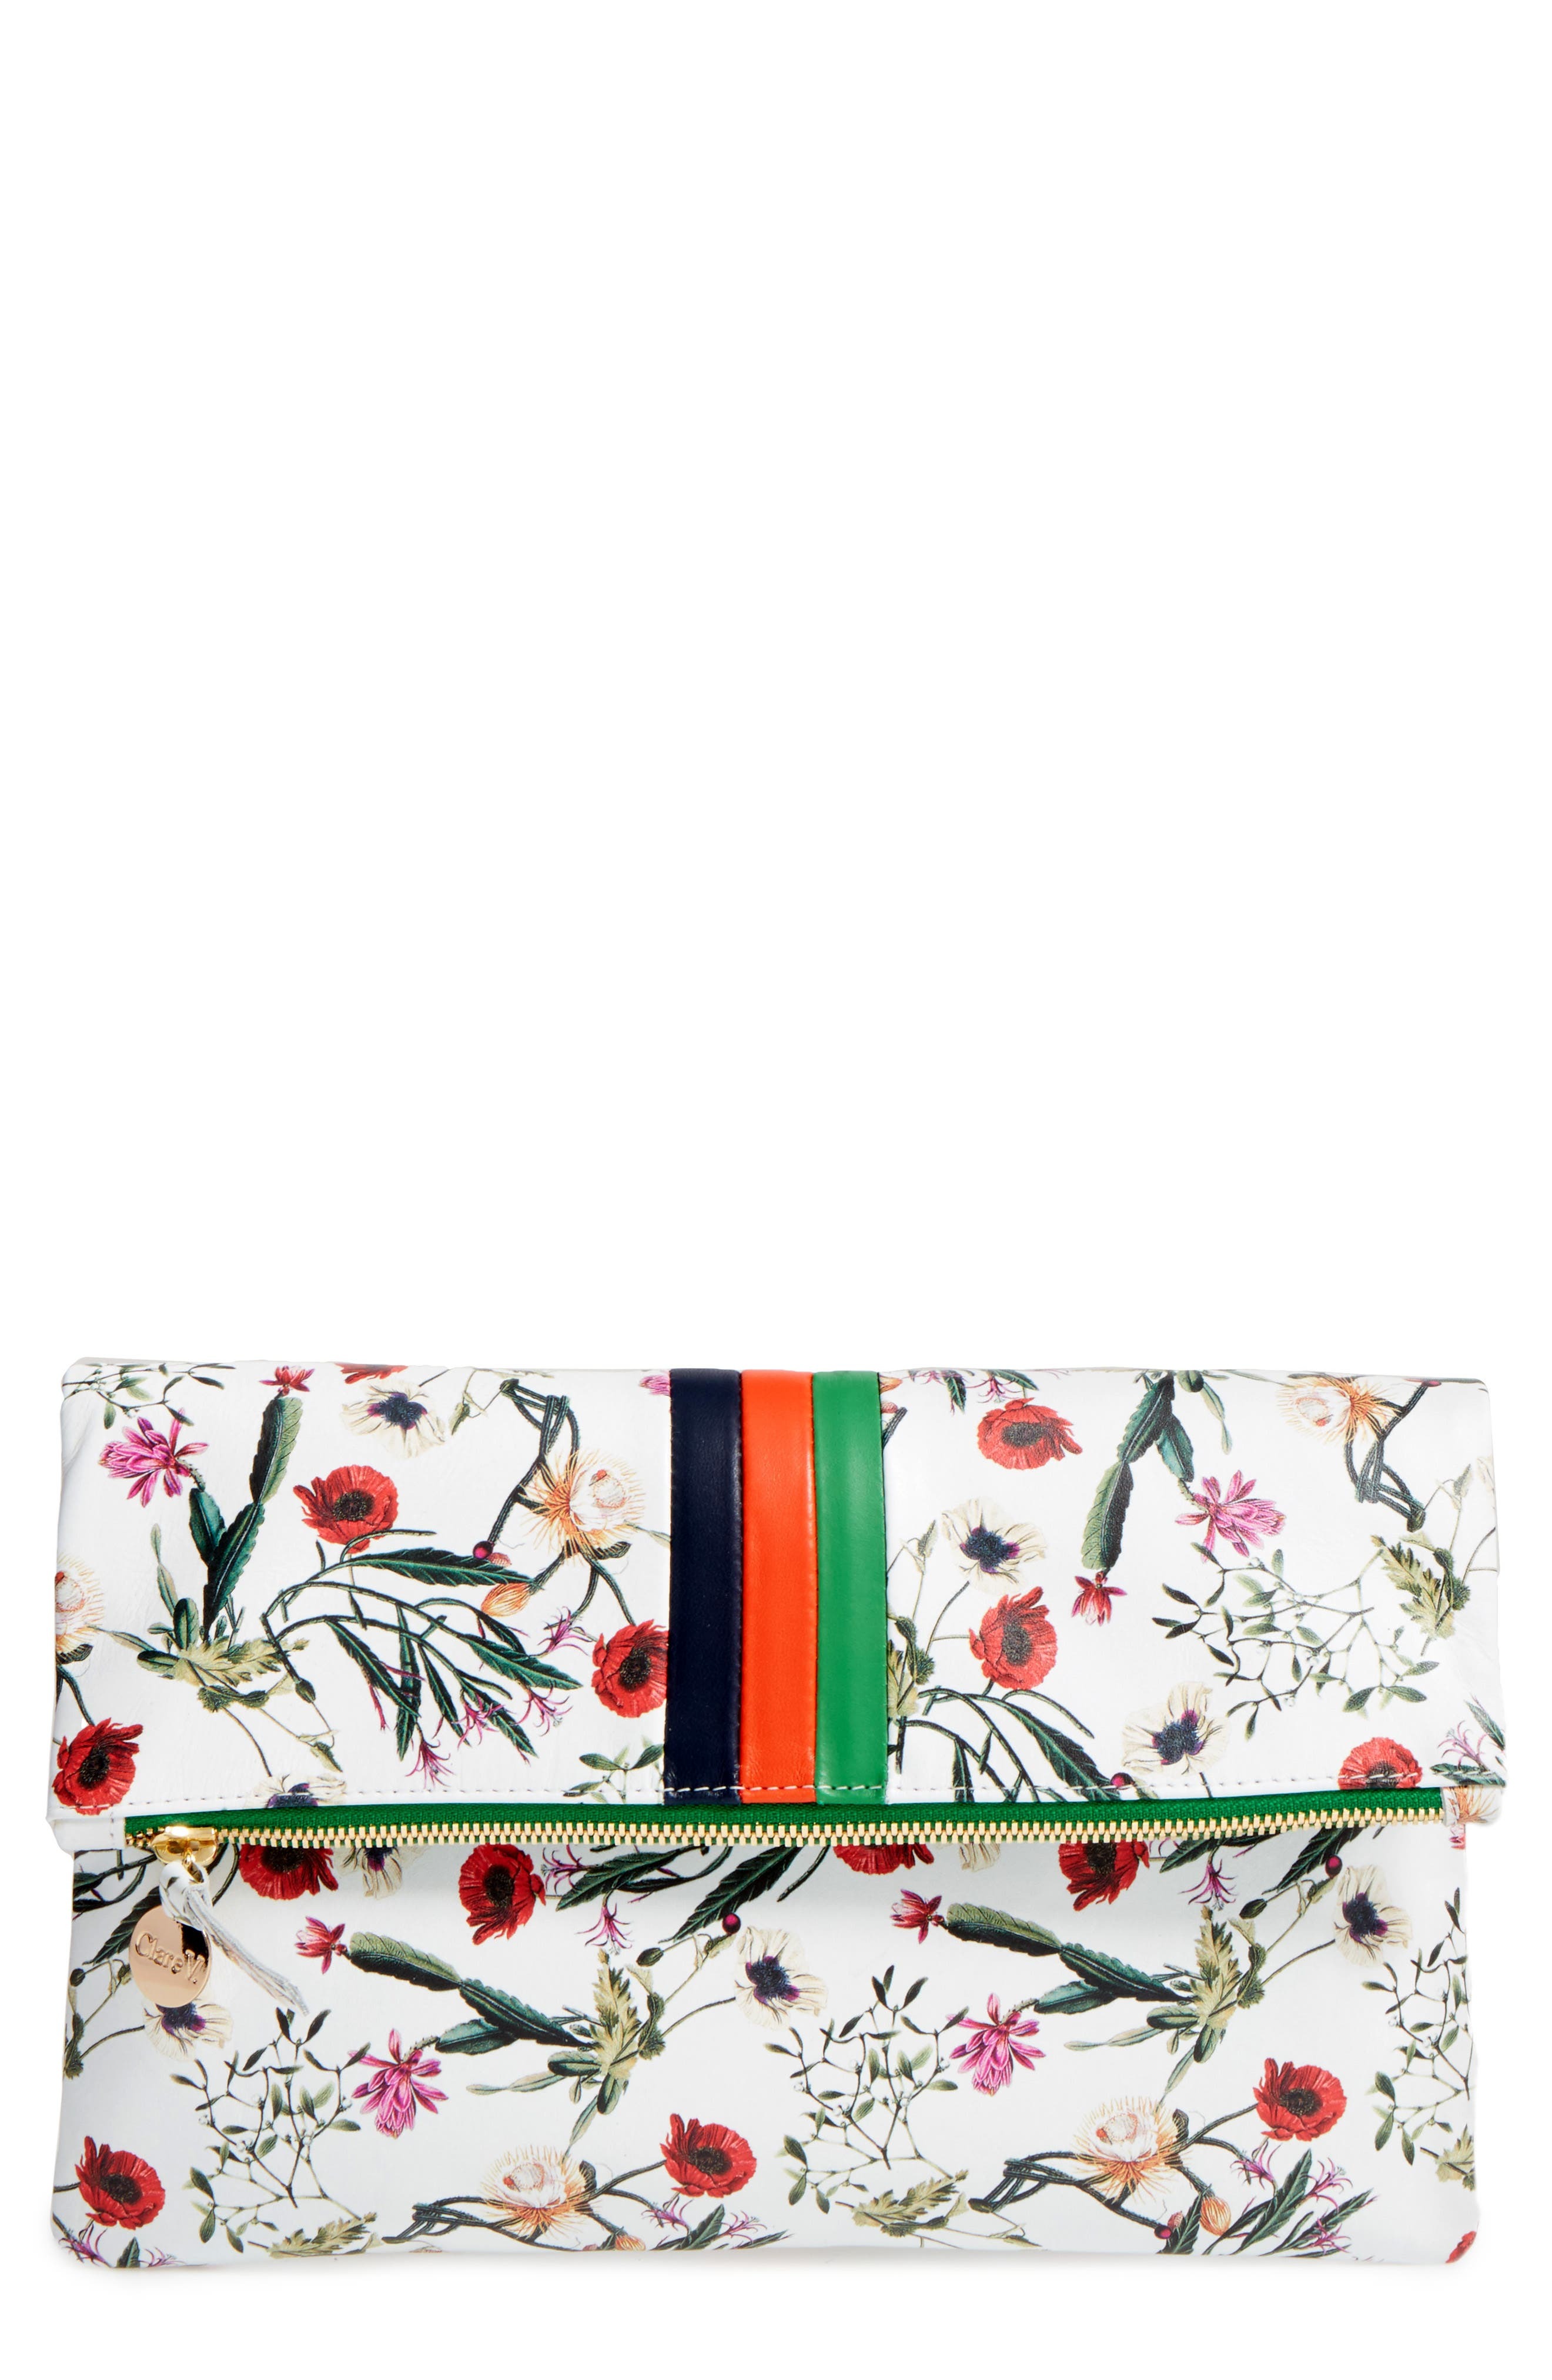 Main Image - Clare V. Floral Leather Foldover Clutch